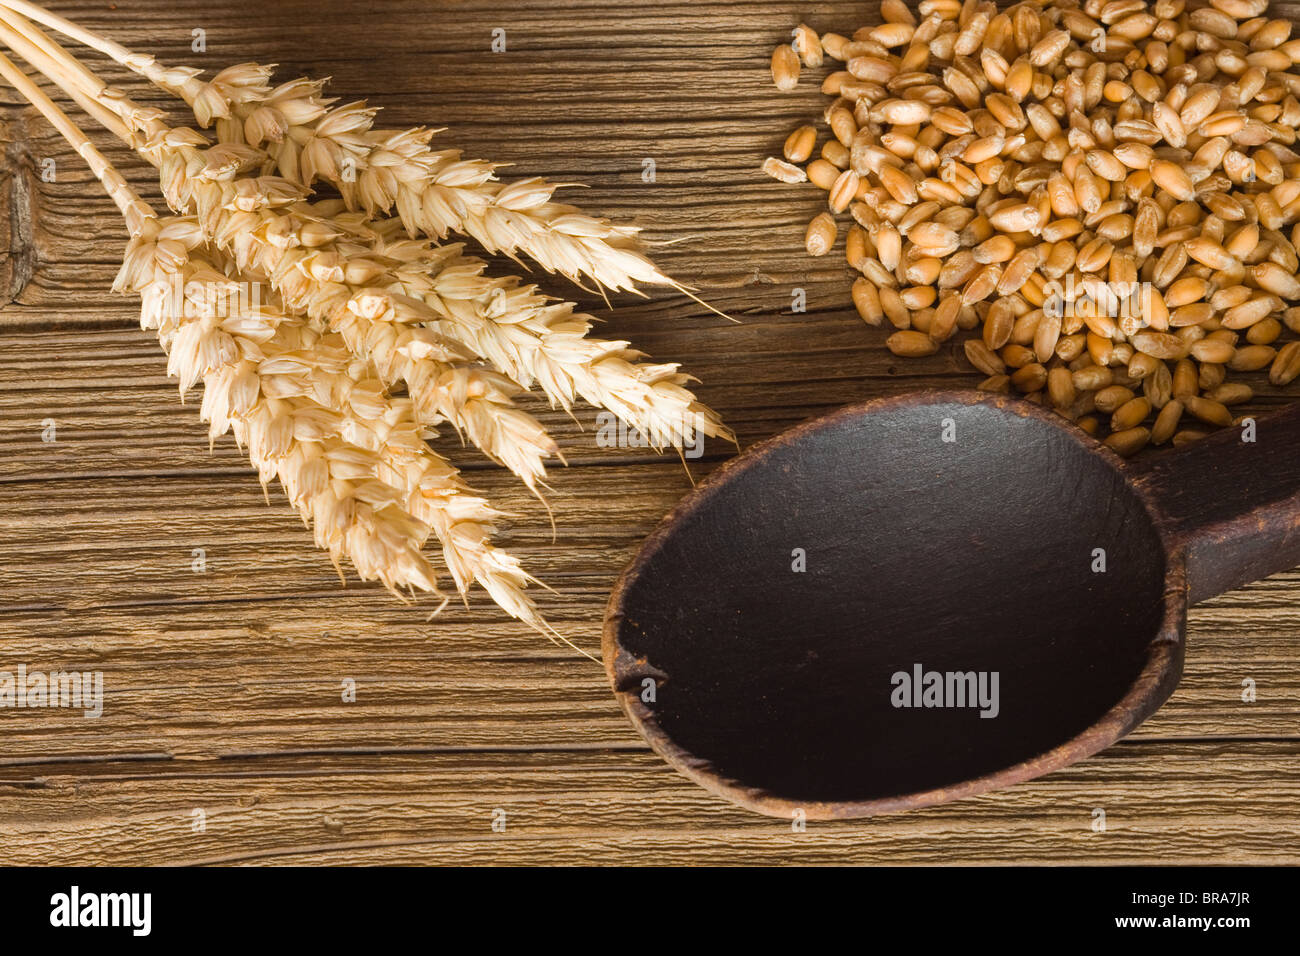 Wheat, seeds and wooden spoon - Stock Image